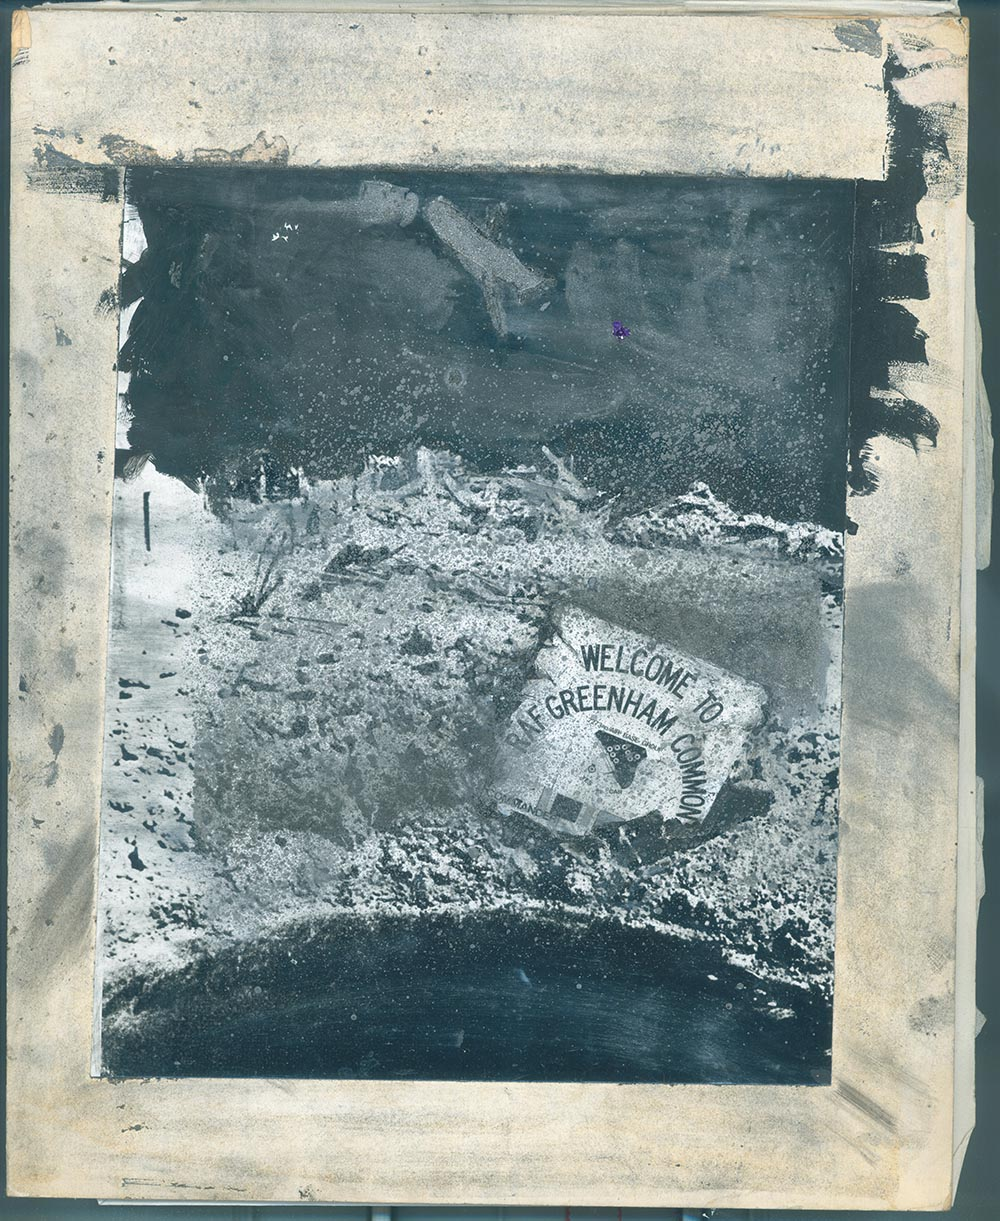 Greenham Common - PhotomontageGelatin silver prints, gouacheand graphite on card1981First published:No Nuclear Weapons,CND/Pluto Press, 1981Catalogue: PK/28